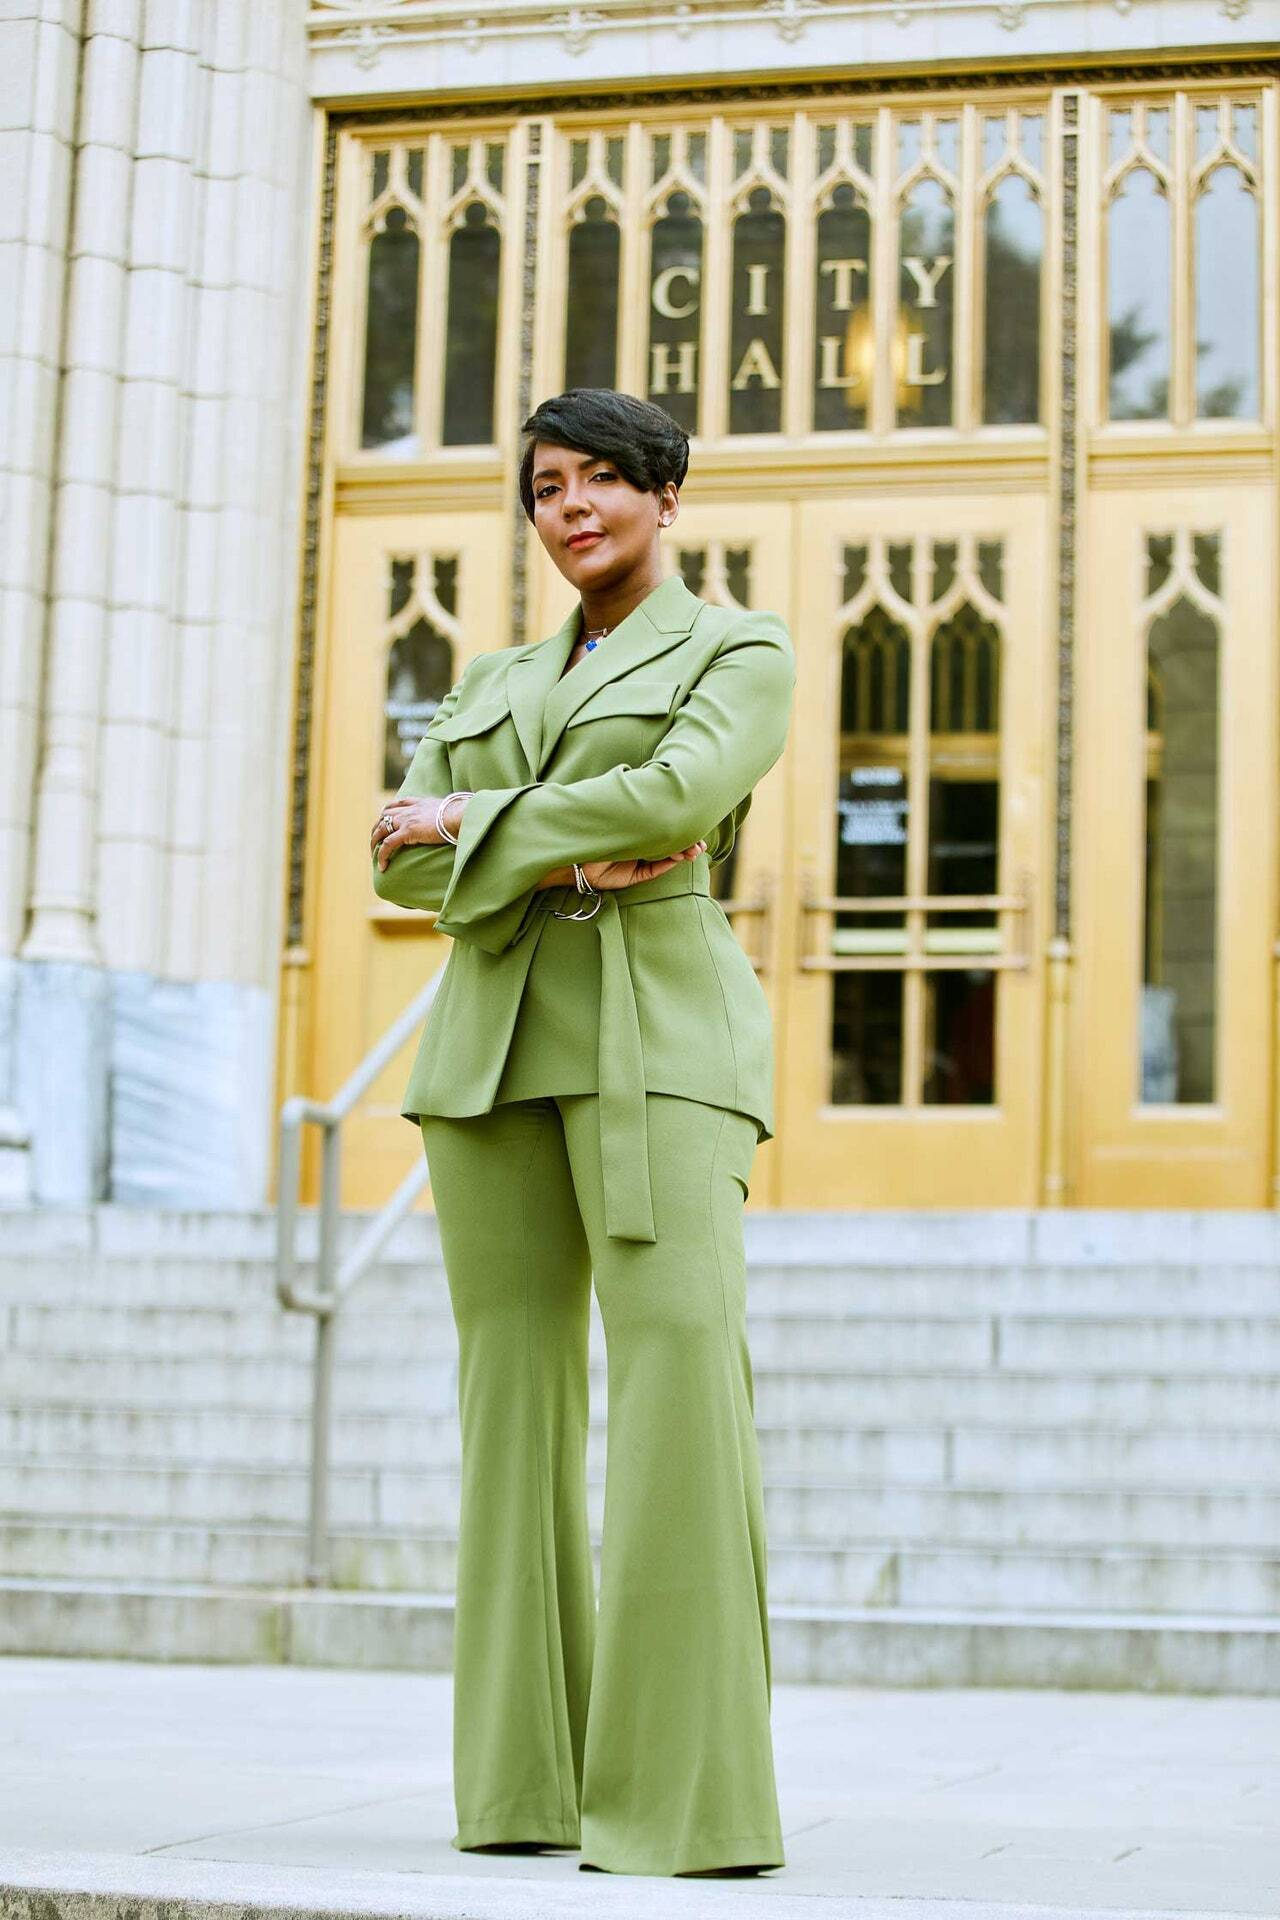 Mayor of Atlanta Keisha Lance Bottoms wearing Galvan London Belted Khaki Green Blazer Jacket